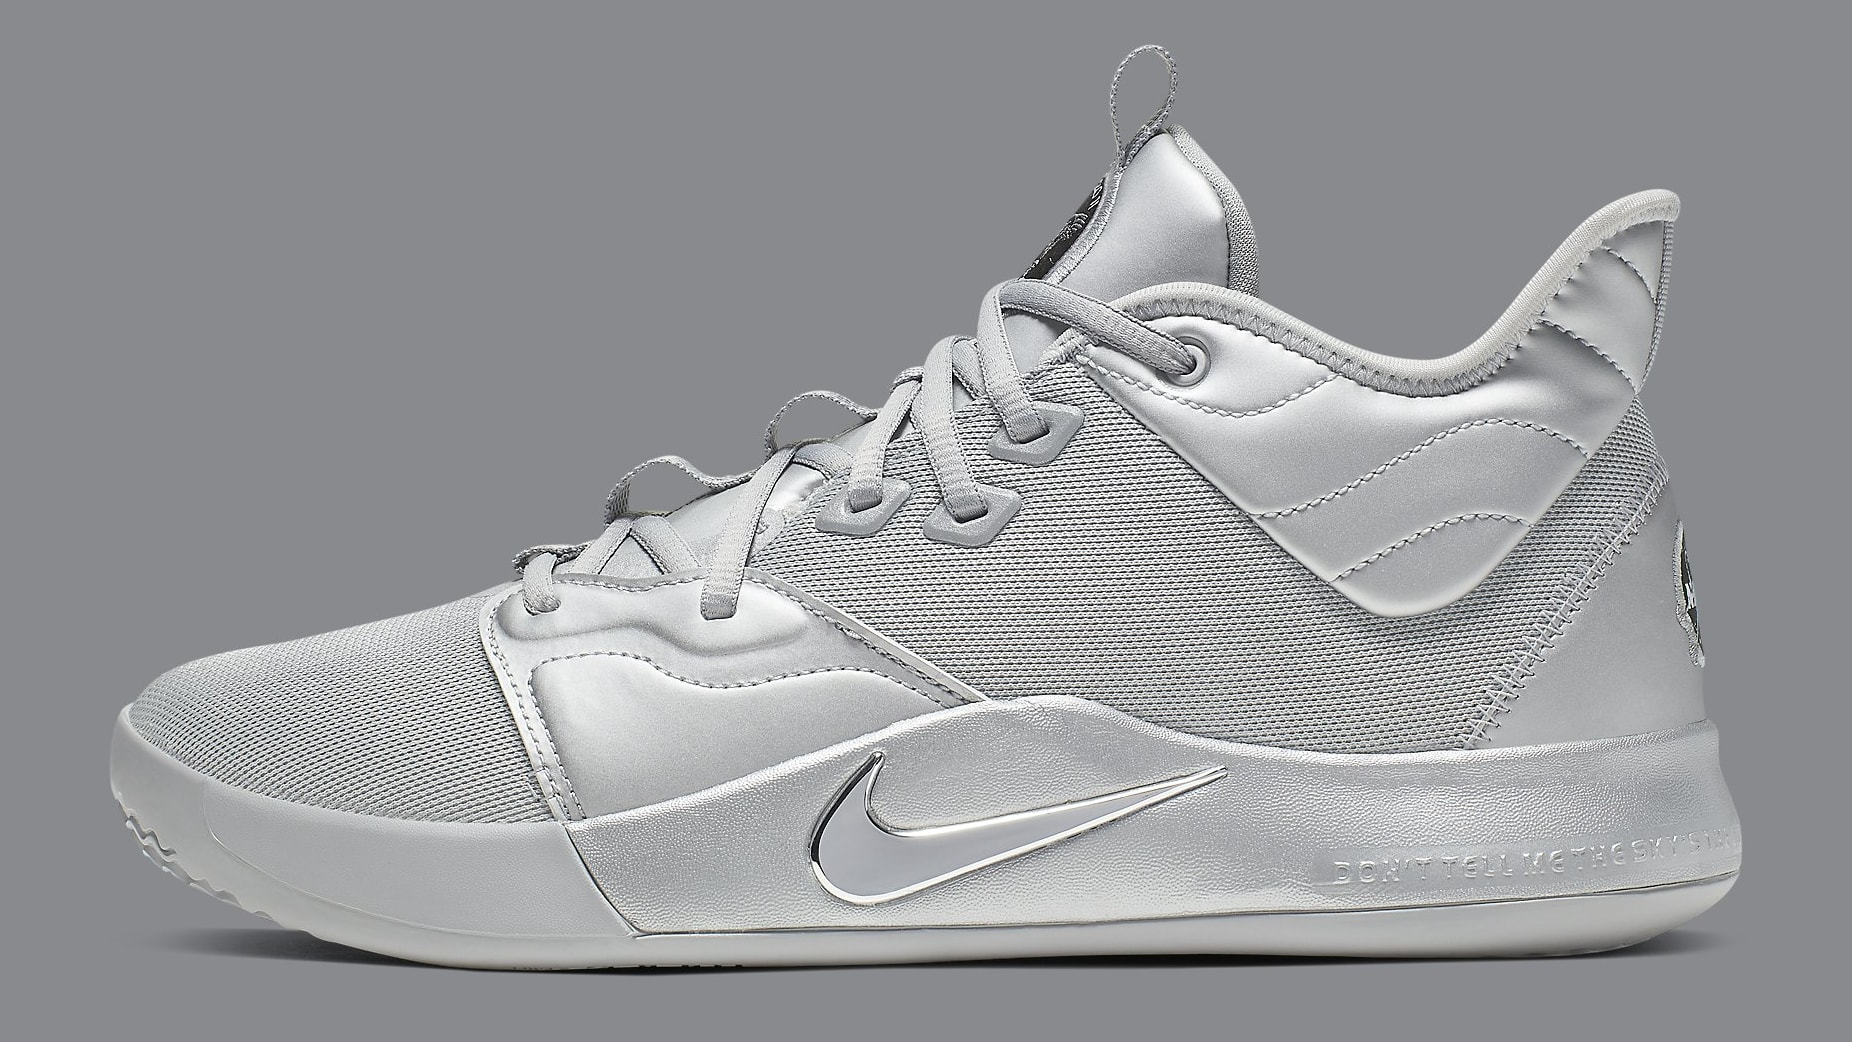 9c3c375ea85 NASA x Nike PG 3 Coming In Full Silver Reflective Colorway: Official ...